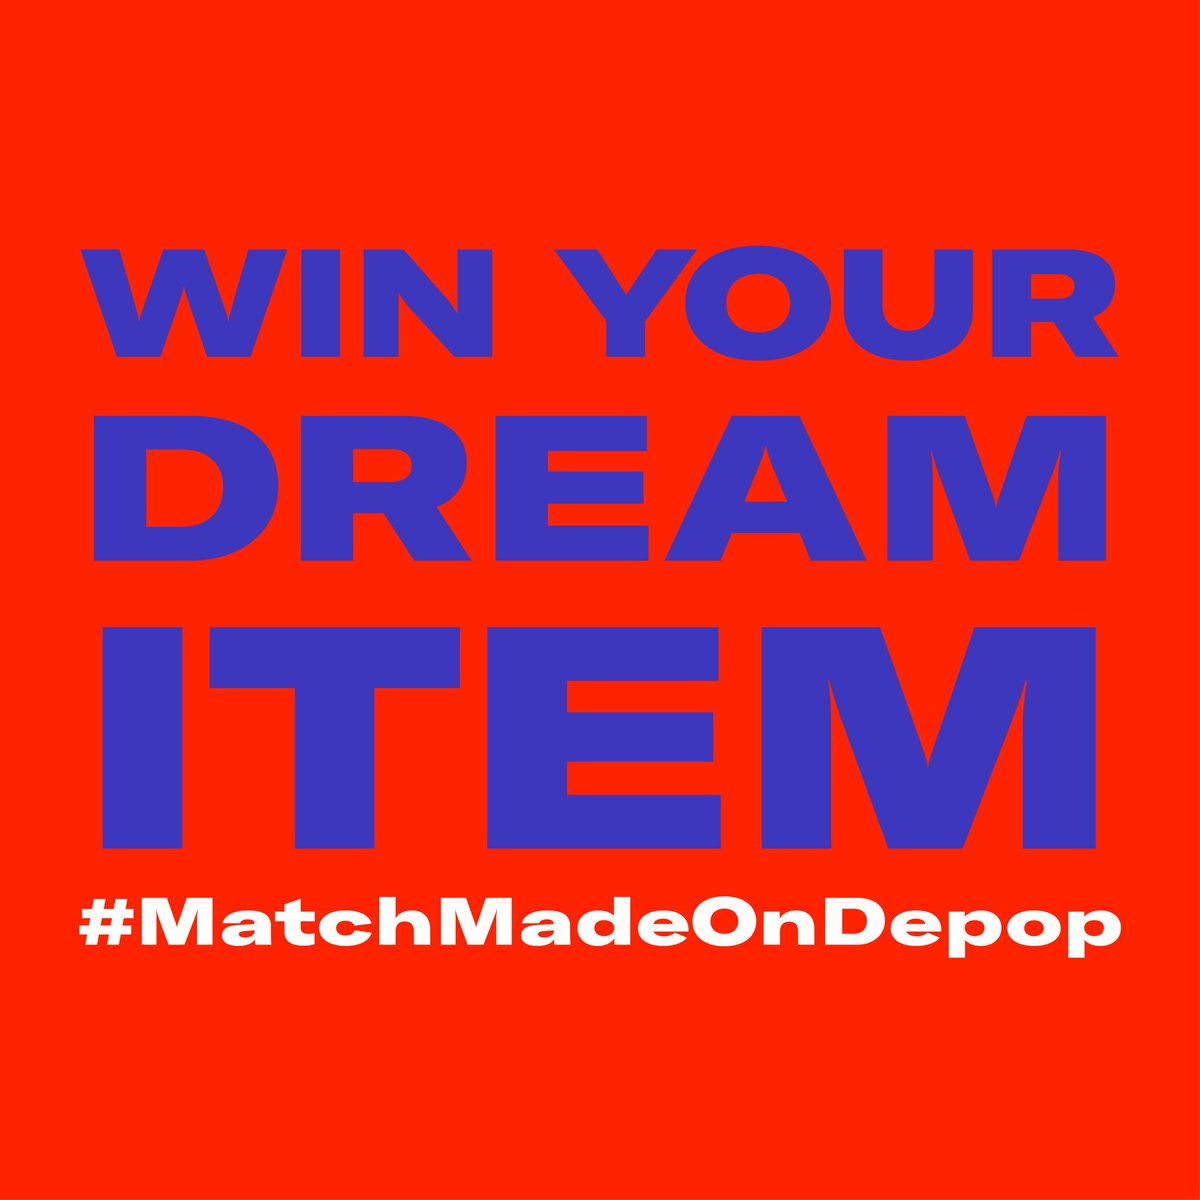 345971f33dd If you want to be in with a chance of winning, here's how. https://www.depop.com/teamdepop_uk/teamdepop_uk-product  …pic.twitter.com/28aHXKSeL5